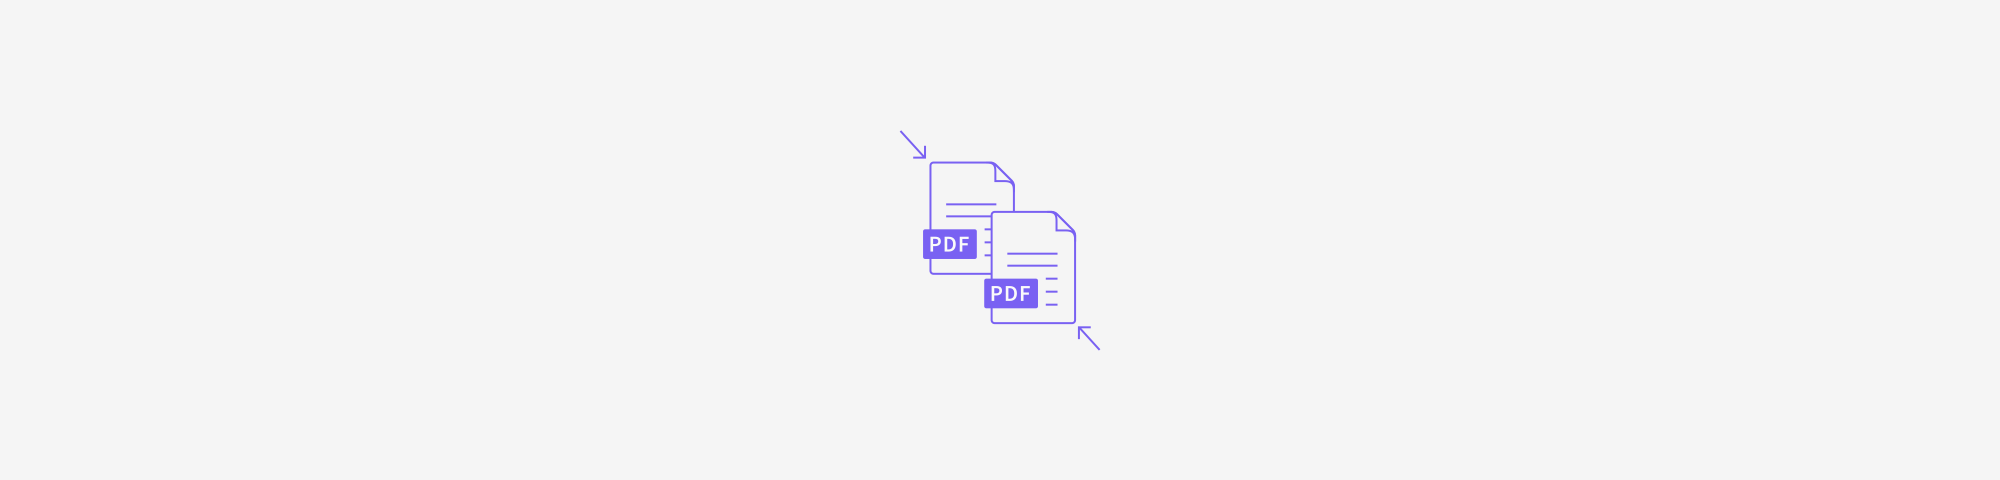 blog-banner: how-to-combine-multiple-pdf-files-into-one-document@2x